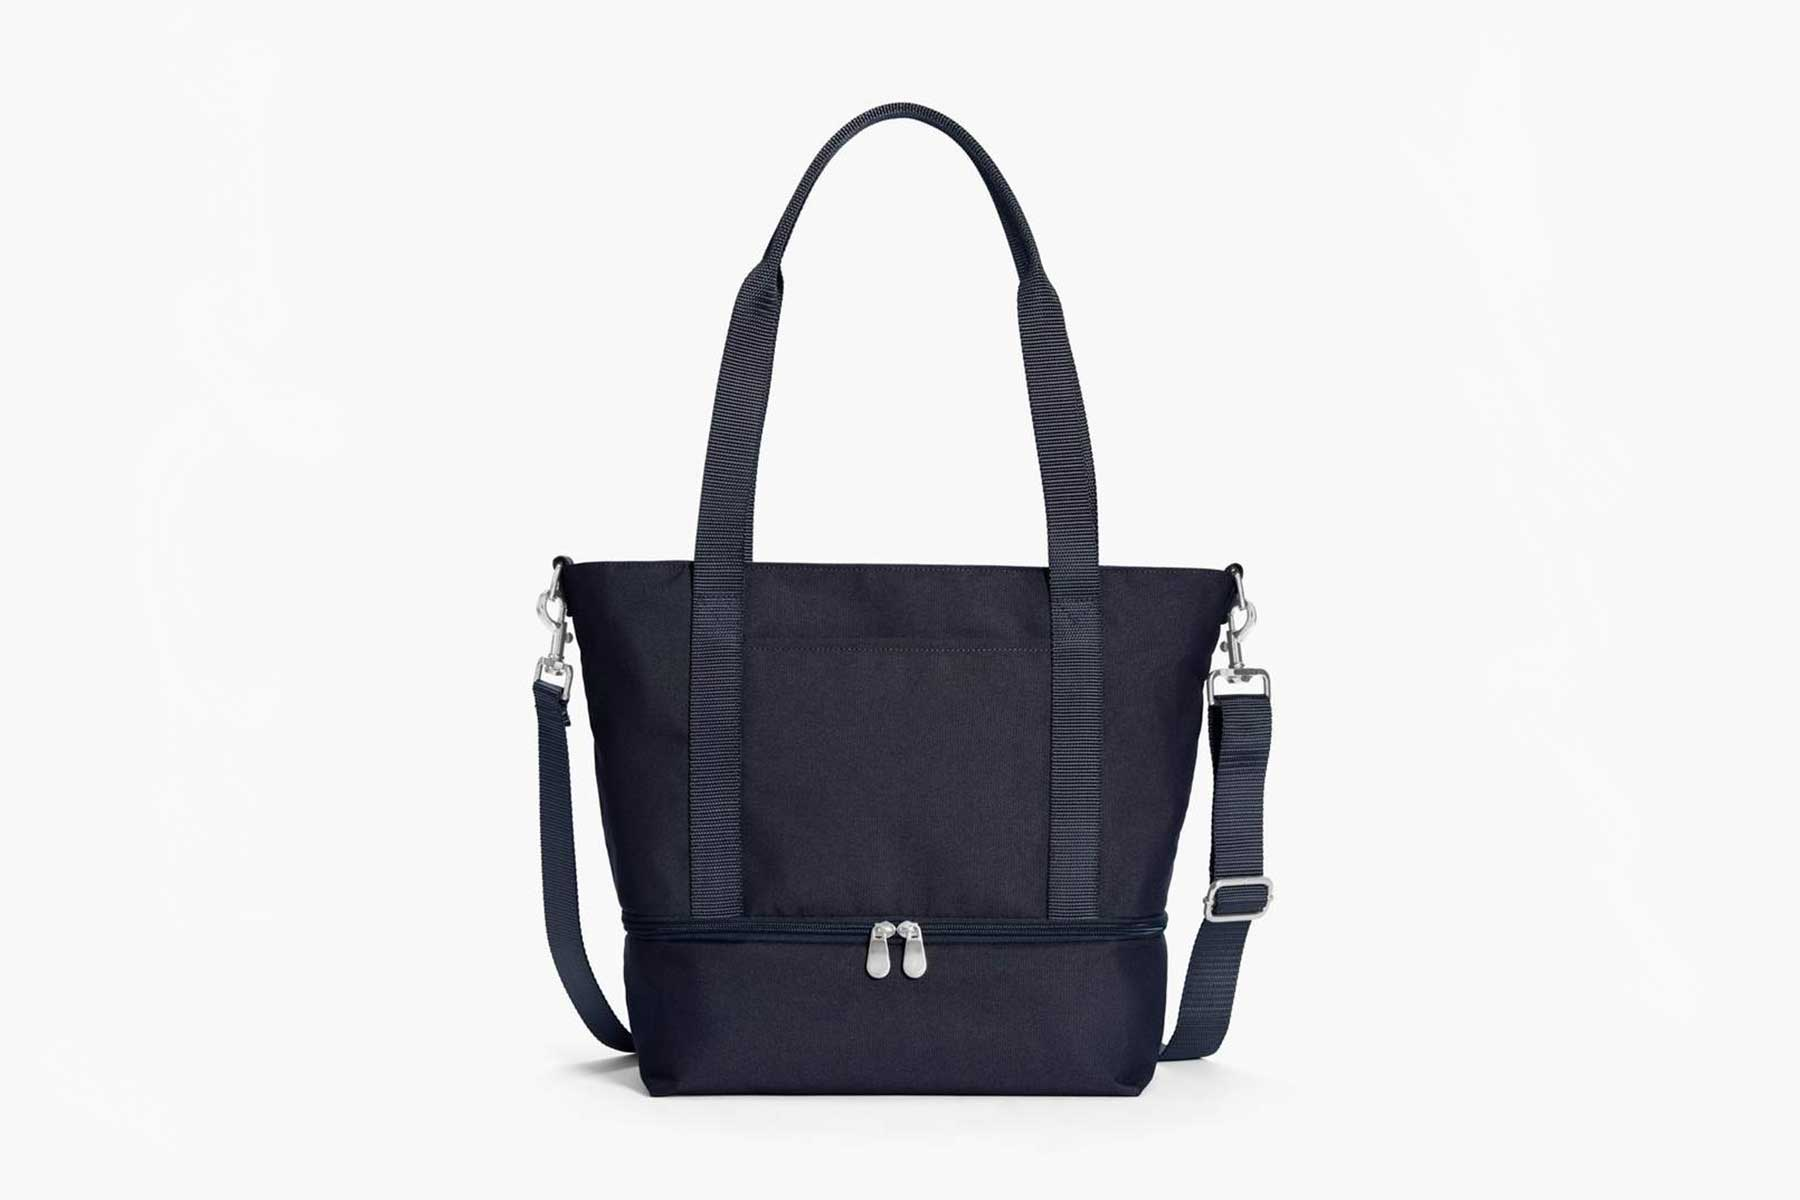 Lo & Sons Catalina Day tote in deep navy